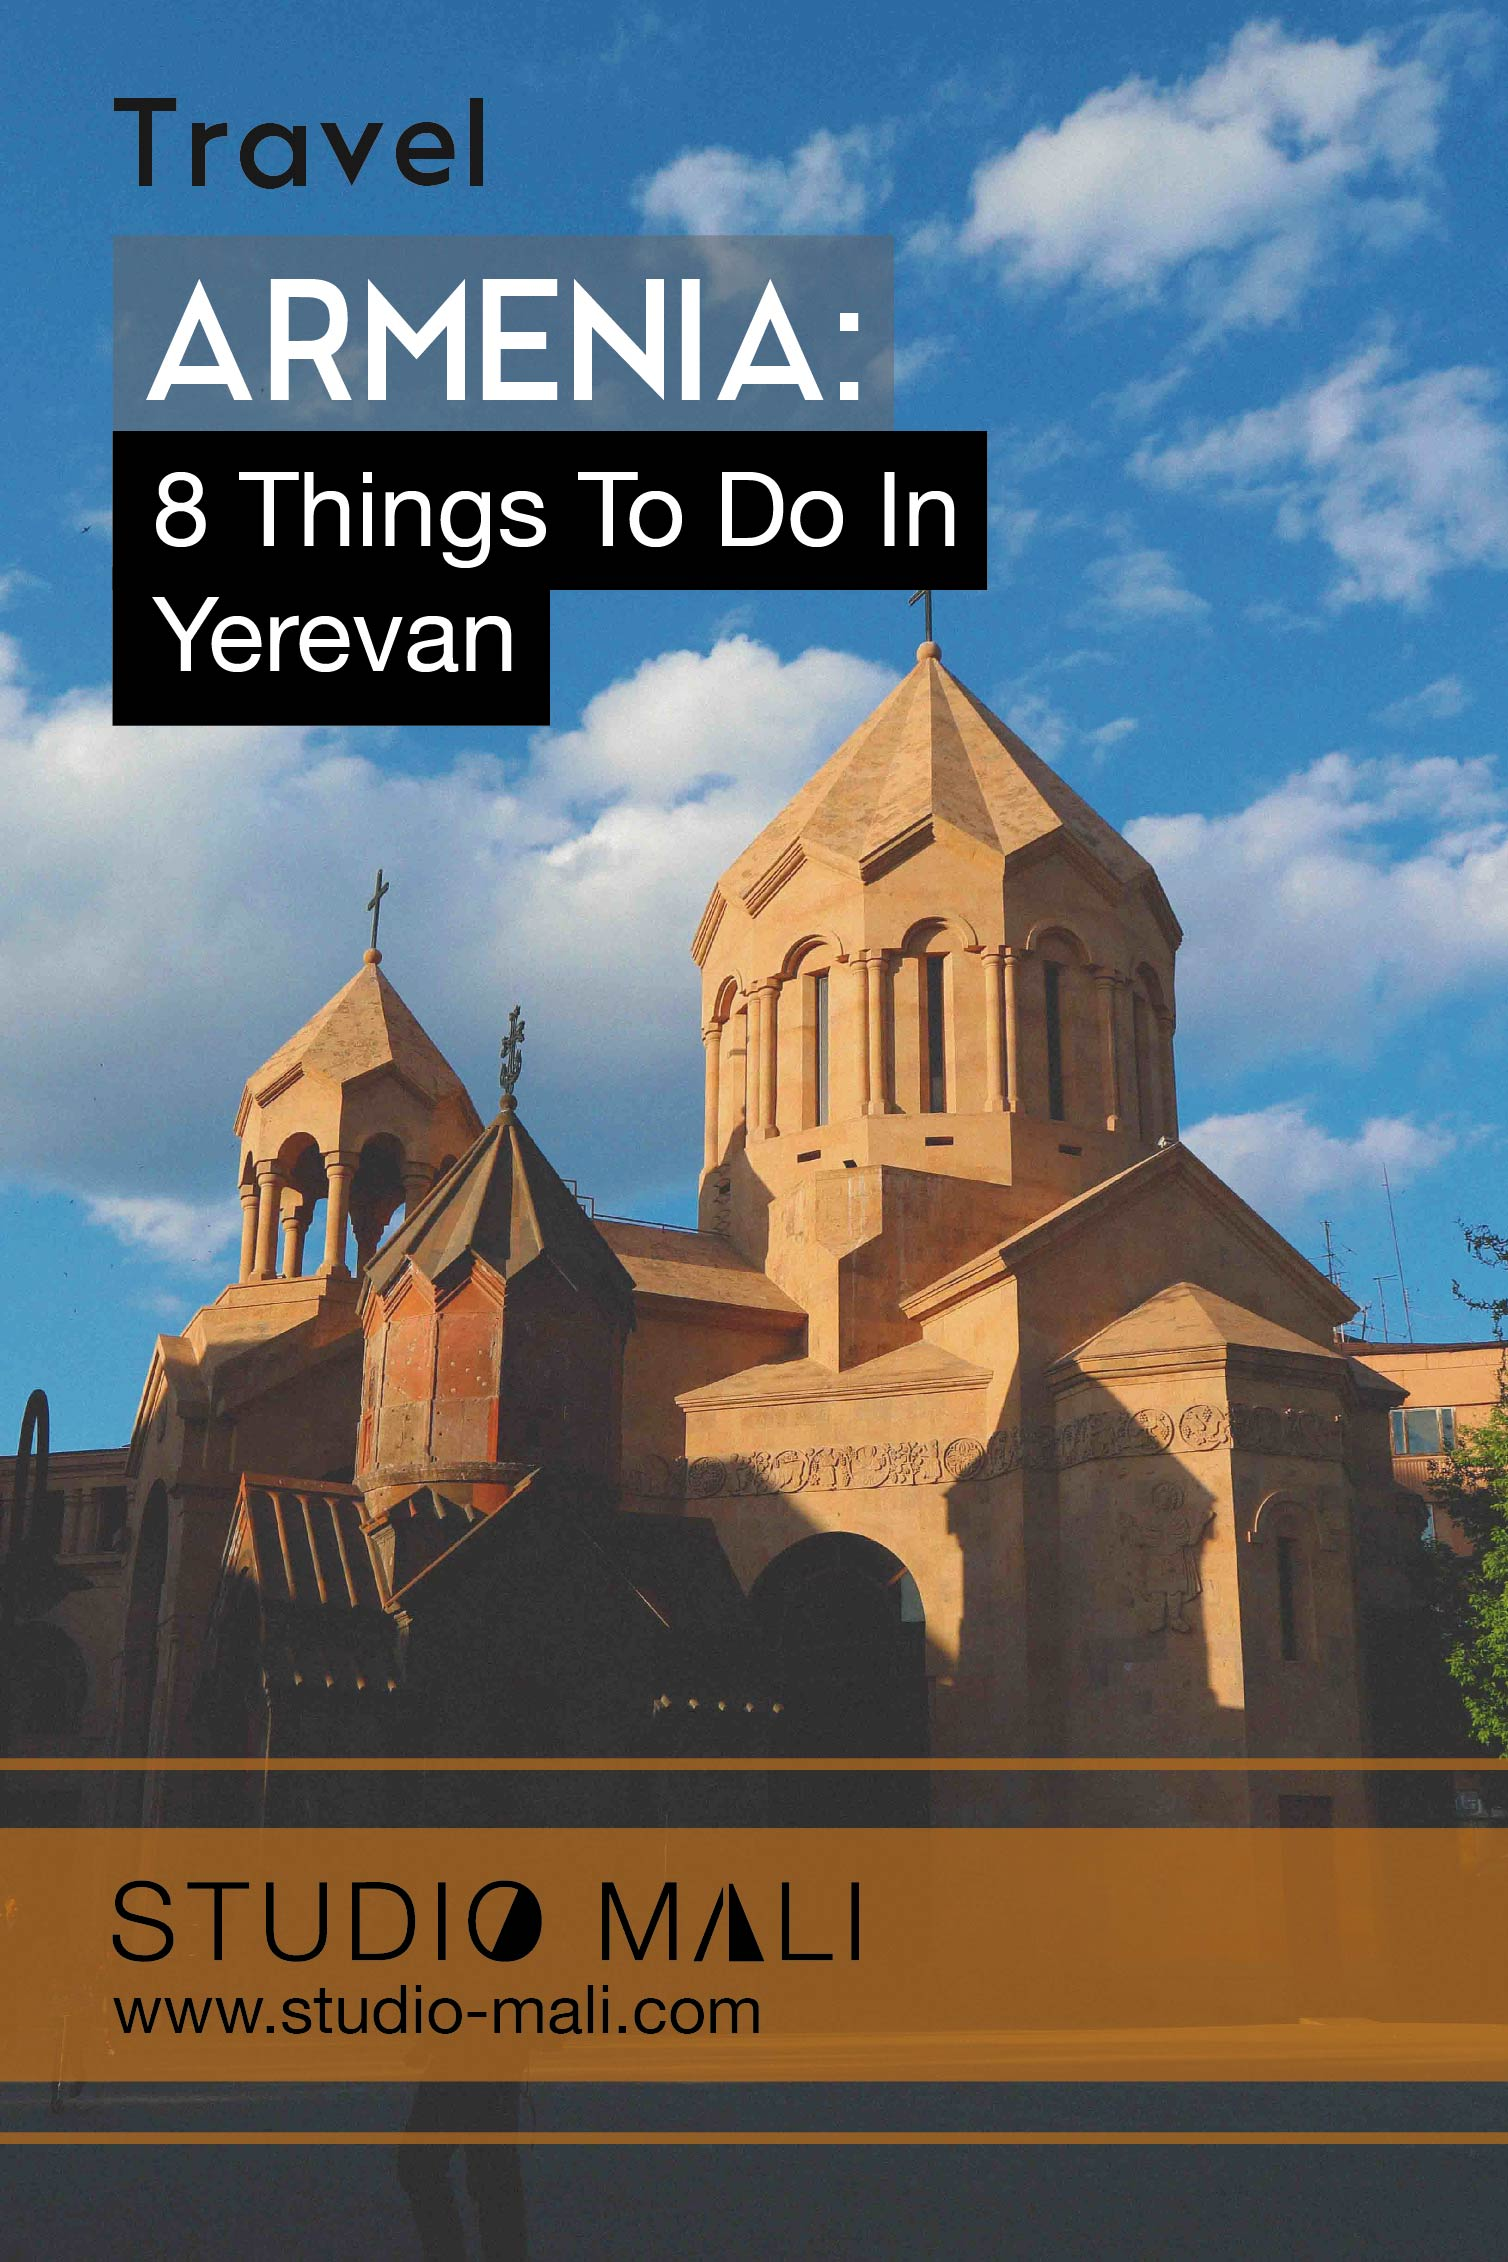 Armenia - 8 Things To Do In Yerevan, by Studio Mali.jpg